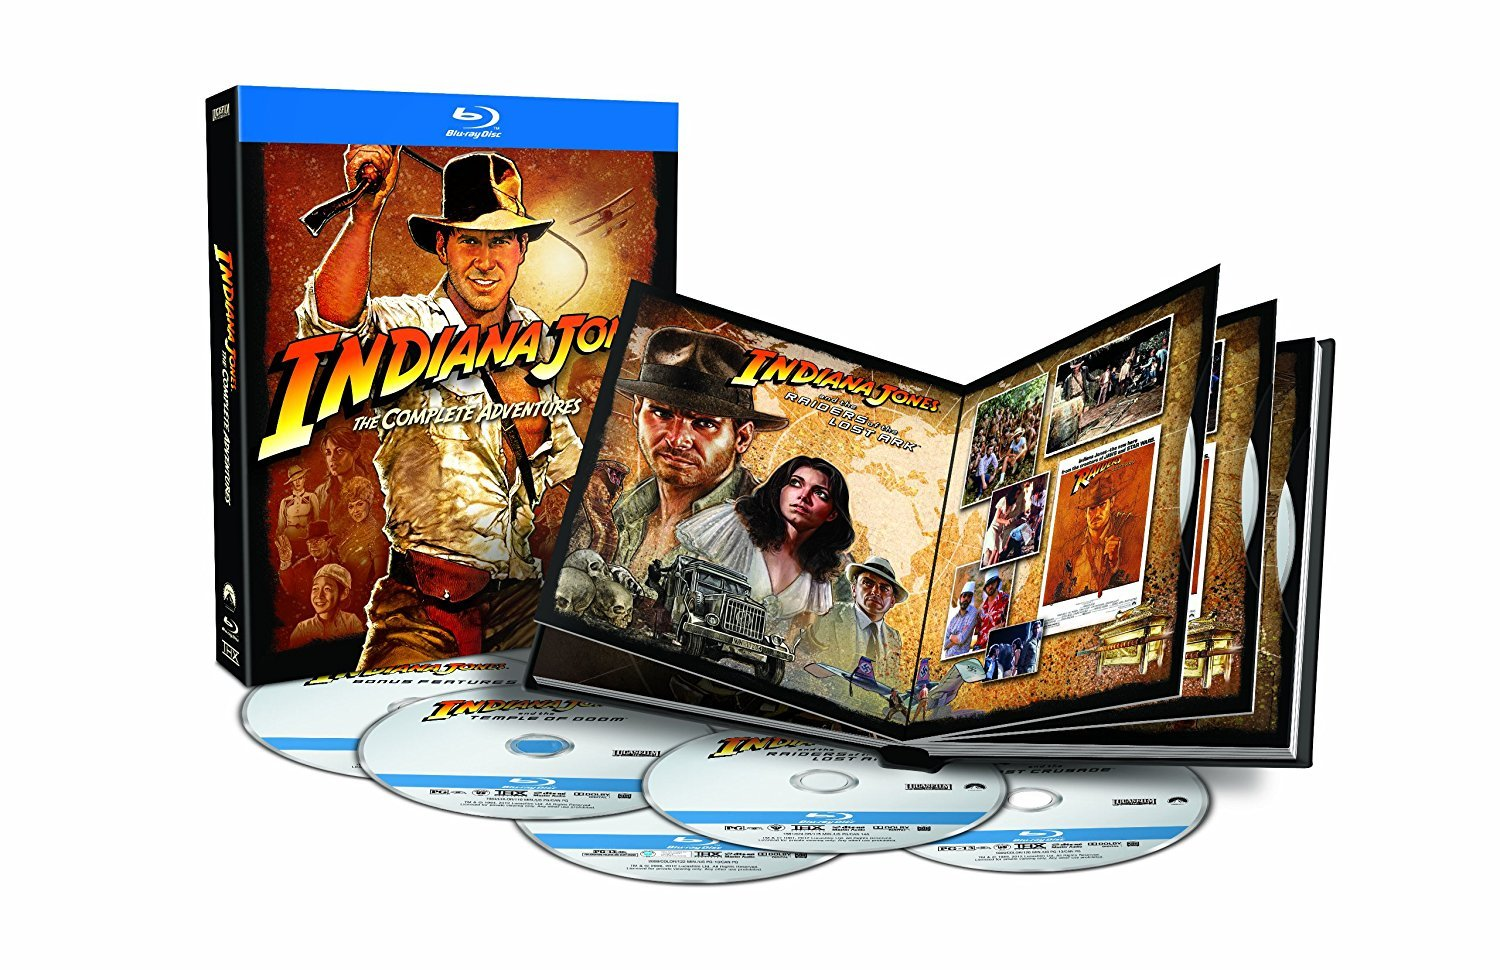 Indiana Jones - The Complete Adventure Collection (Blu-ray, 2012, 5-Disc Set)